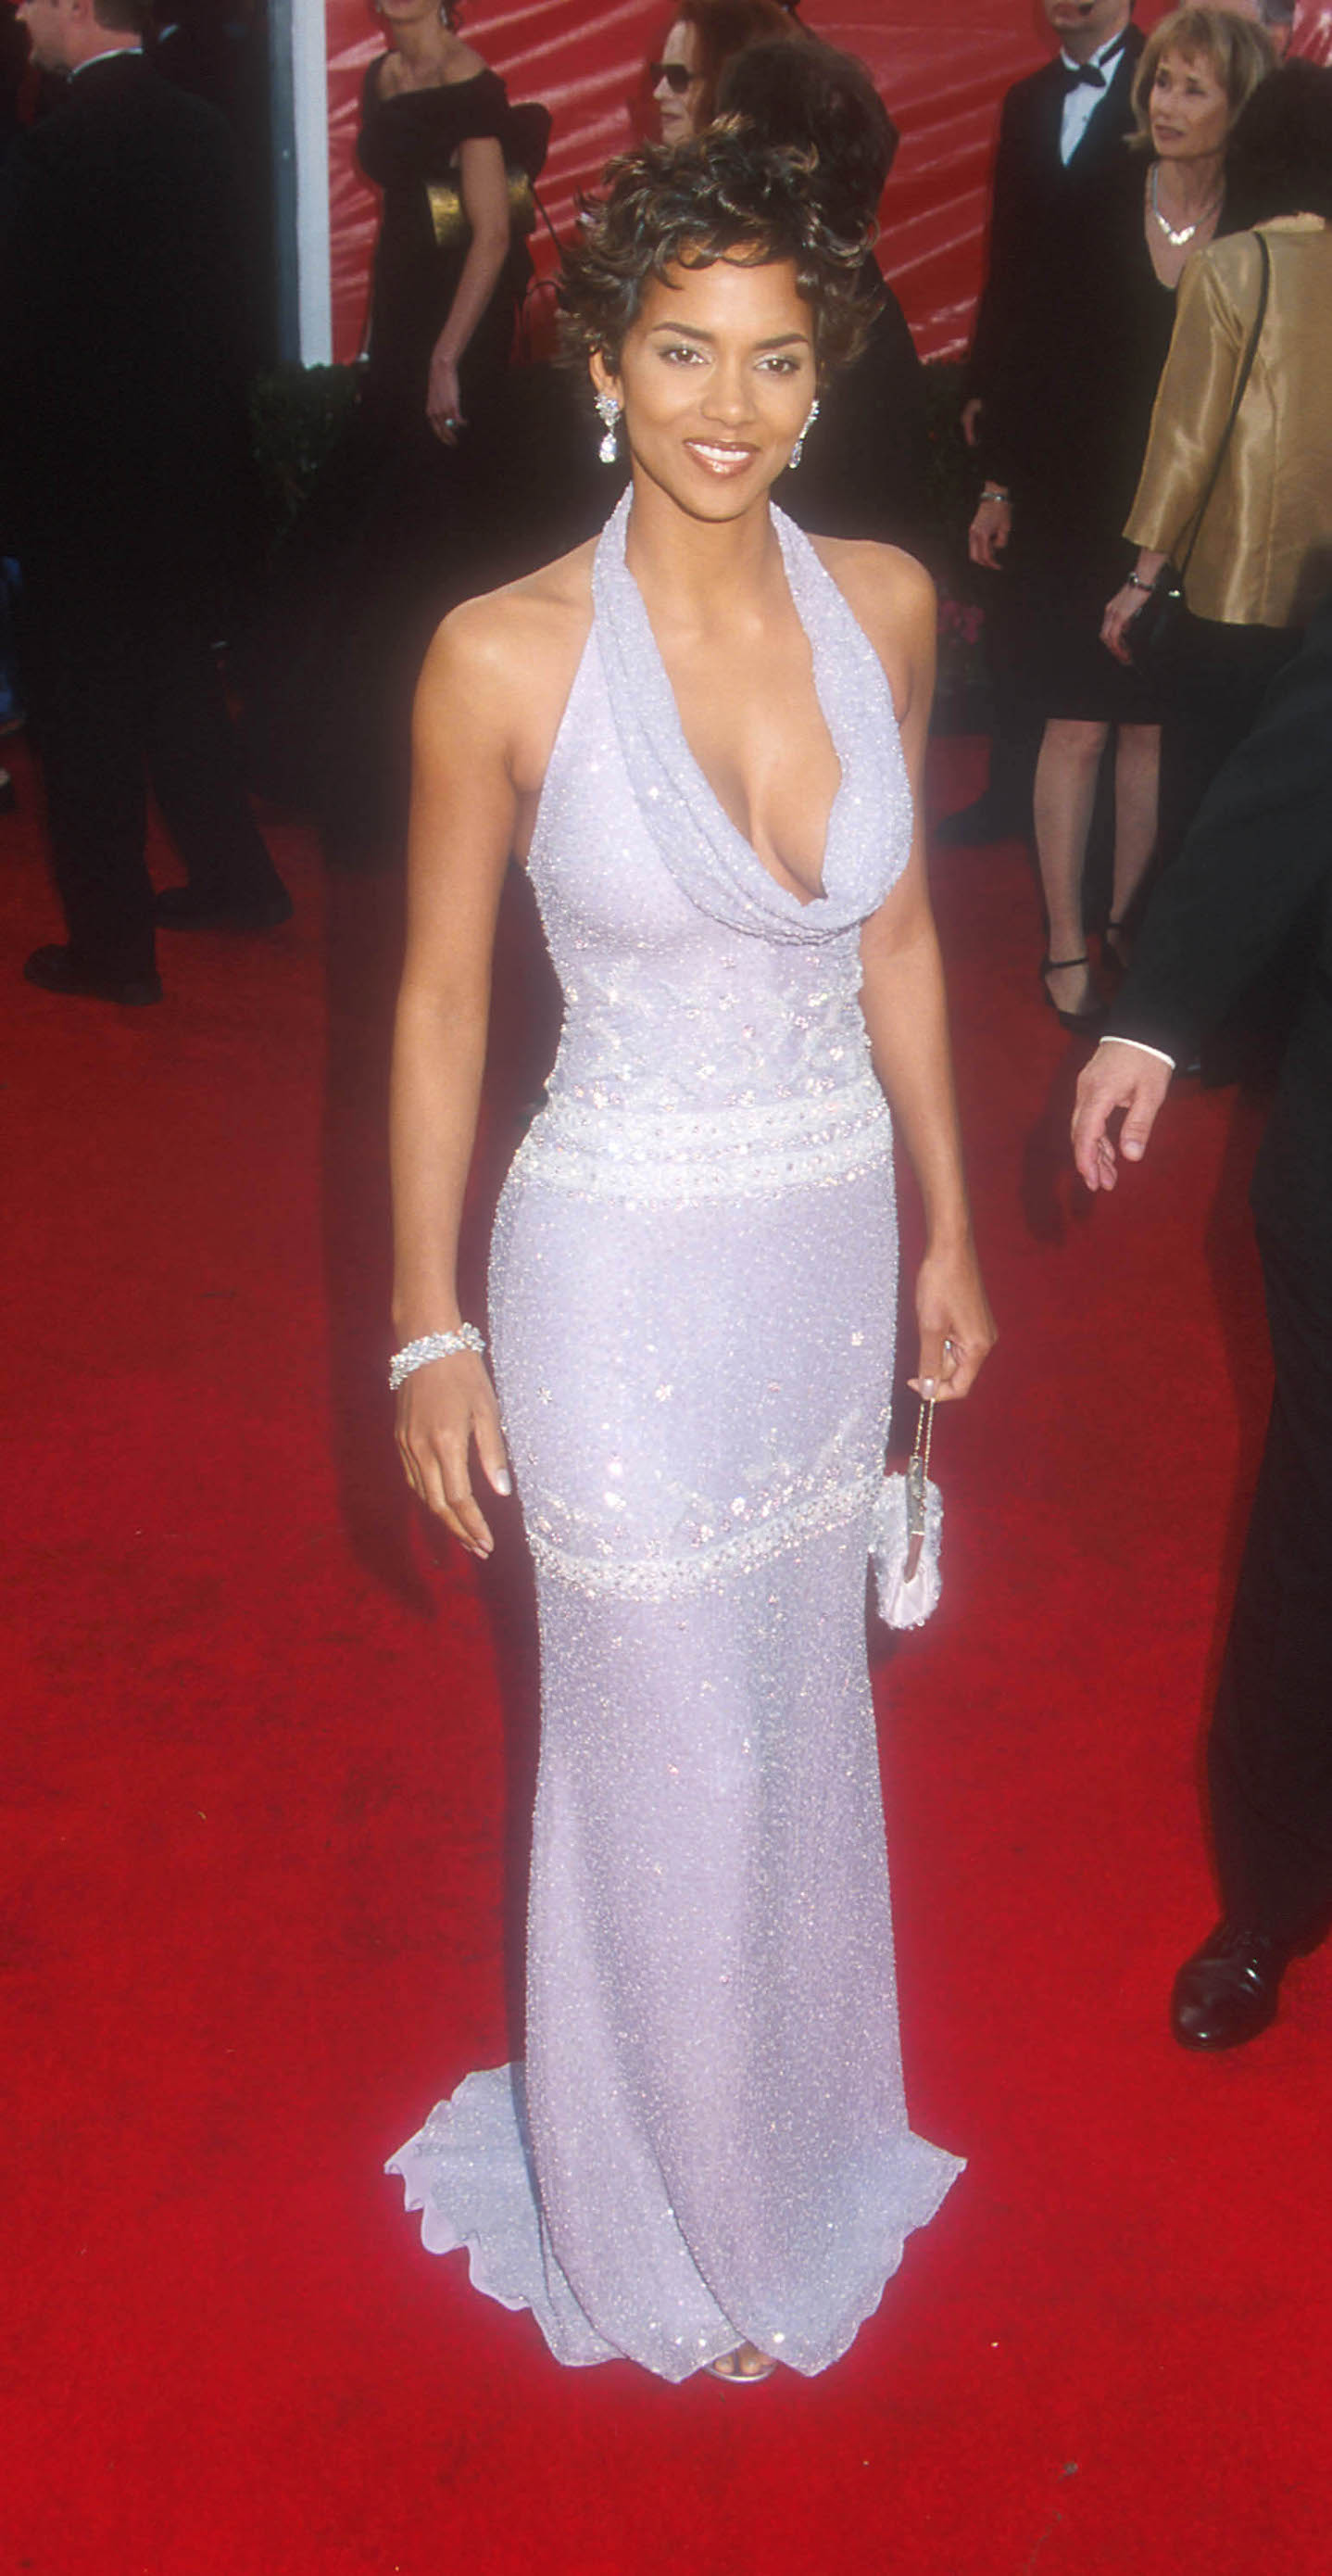 Halle Berry at the &73rd Annual Academy Awards. (CA),Image: 17946664, License: Rights-managed, Restrictions: , Model Release: no, Credit line: Russ Einhorn / StarMax / Profimedia